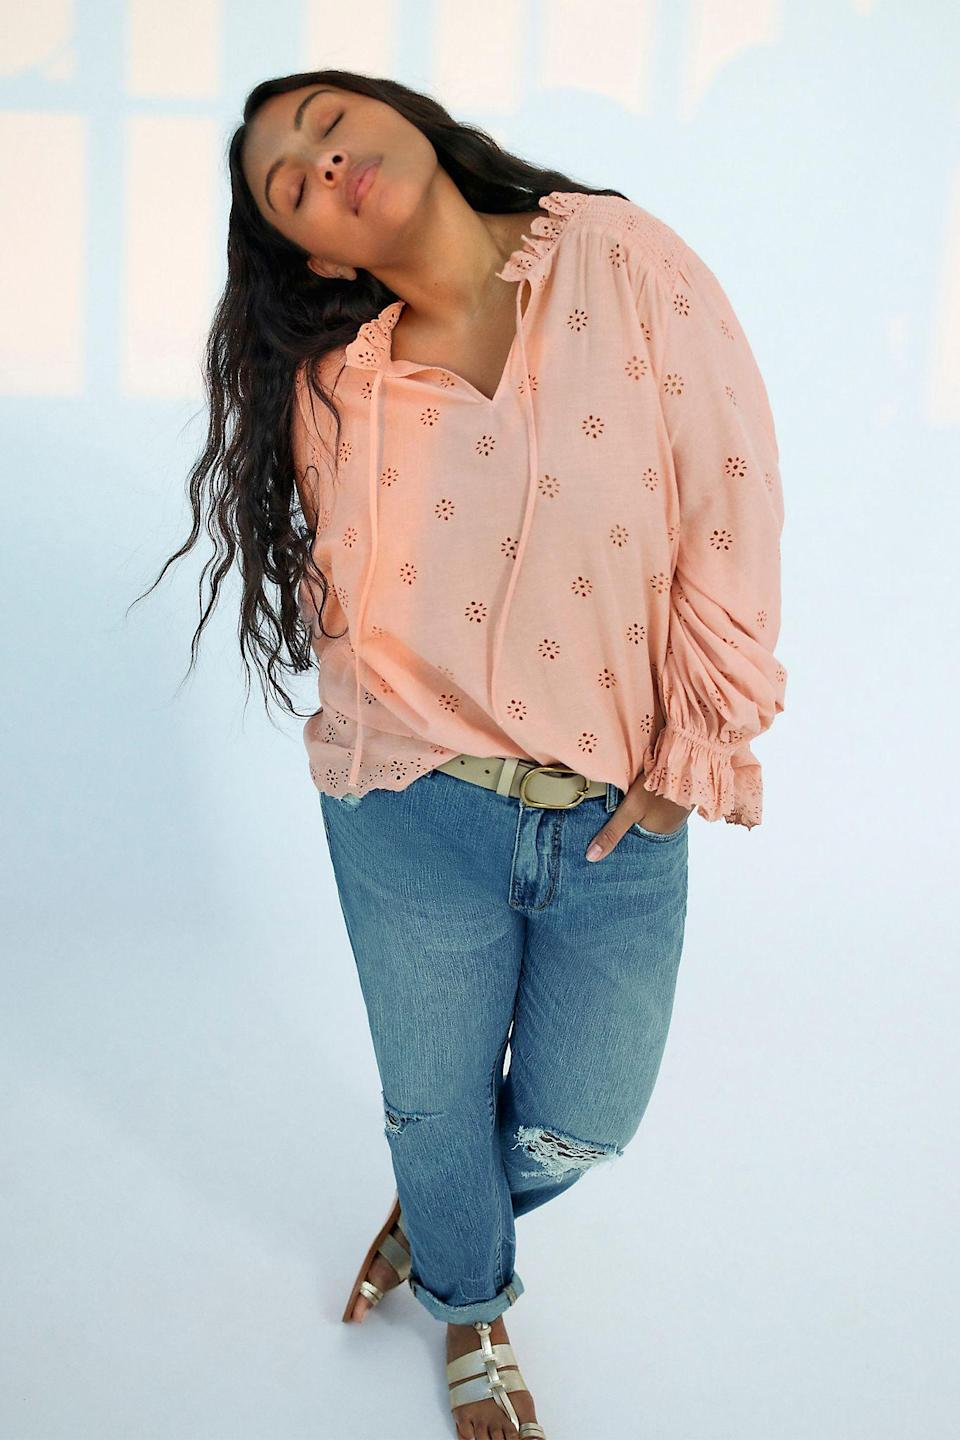 """<br><br><strong>Pilcro</strong> The Slim Boyfriend Jeans, $, available at <a href=""""https://go.skimresources.com/?id=30283X879131&url=https%3A%2F%2Fwww.anthropologie.com%2Fshop%2Fpilcro-the-slim-boyfriend-jeans2%3Fcategory%3Dplus-size-jeans%26color%3D092%26type%3DPLUS%26viewcode%3Dc%26quantity%3D1"""" rel=""""nofollow noopener"""" target=""""_blank"""" data-ylk=""""slk:Anthropologie"""" class=""""link rapid-noclick-resp"""">Anthropologie</a>"""